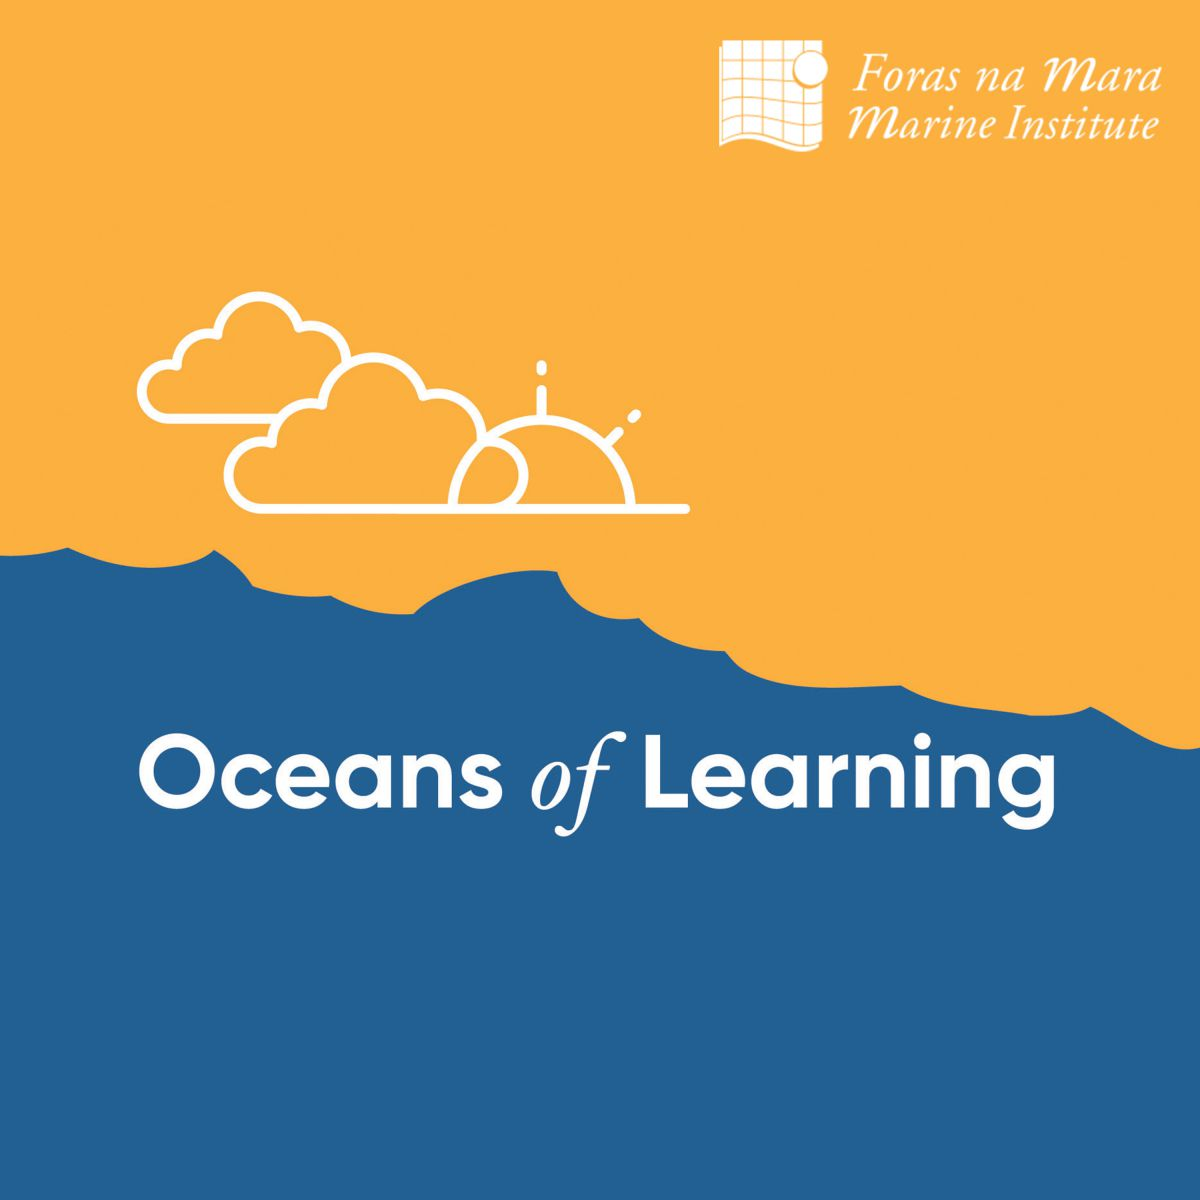 Oceans of Learning